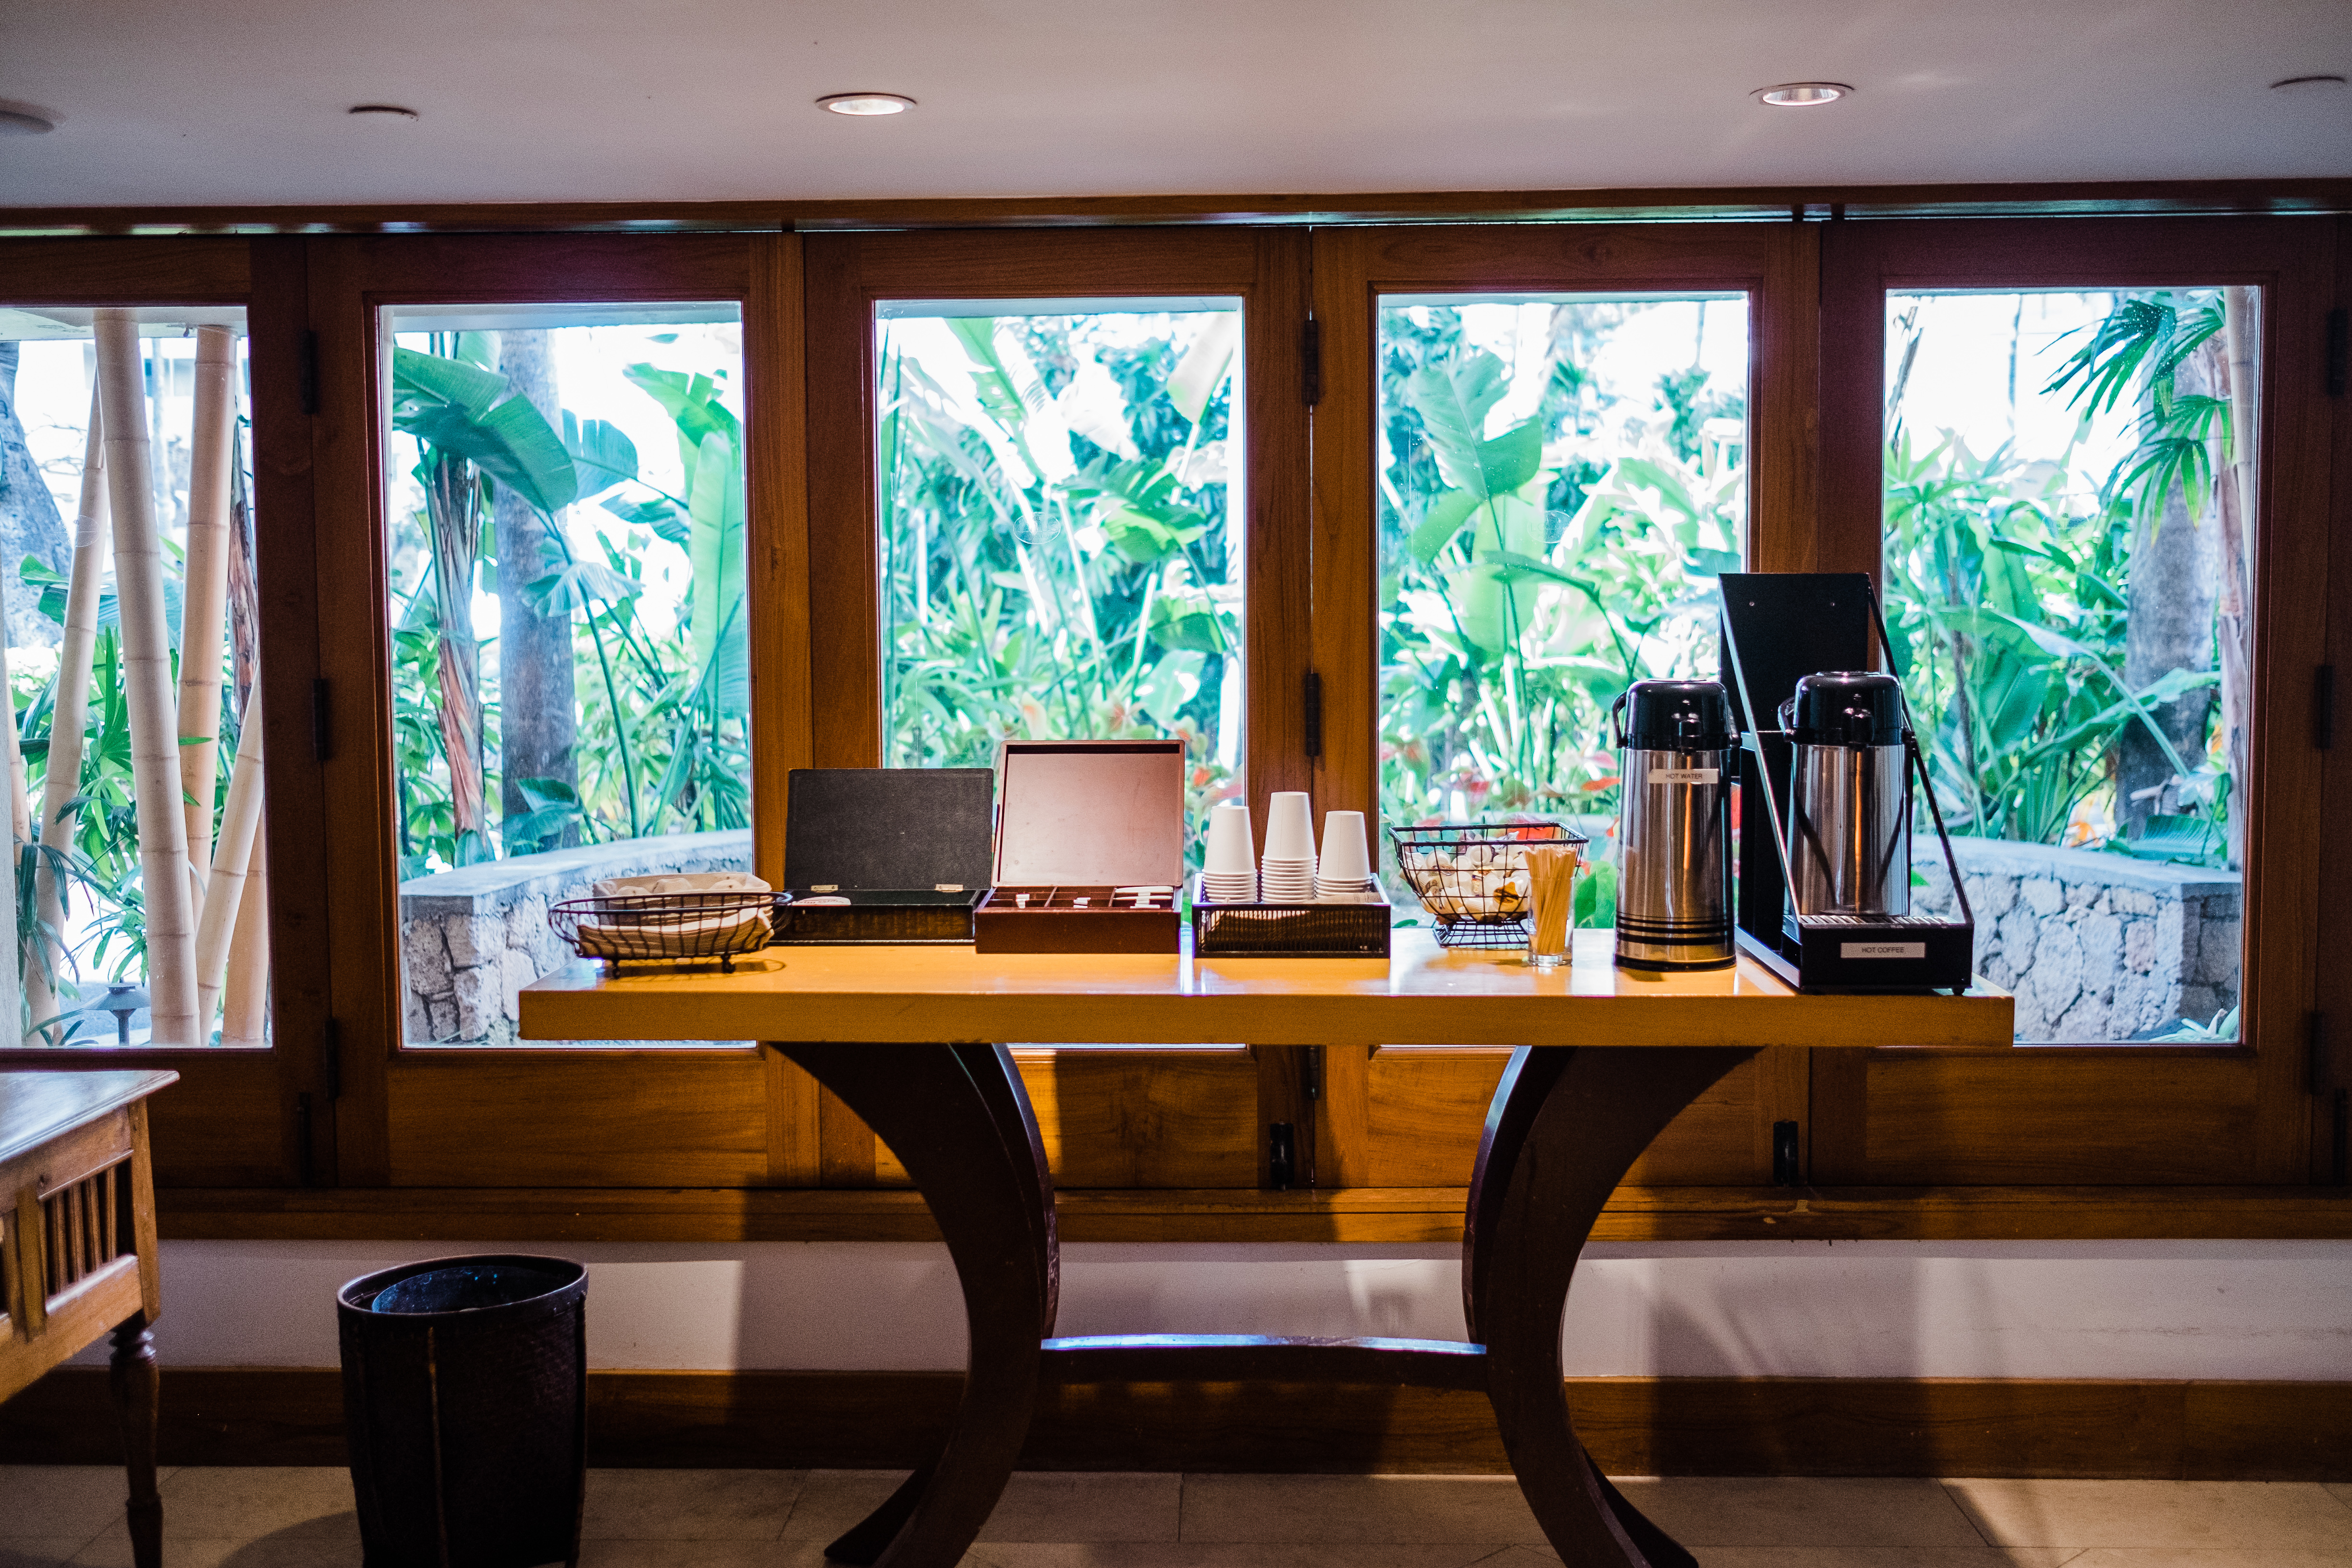 Coffee and Pastries Served Daily in the Lobby